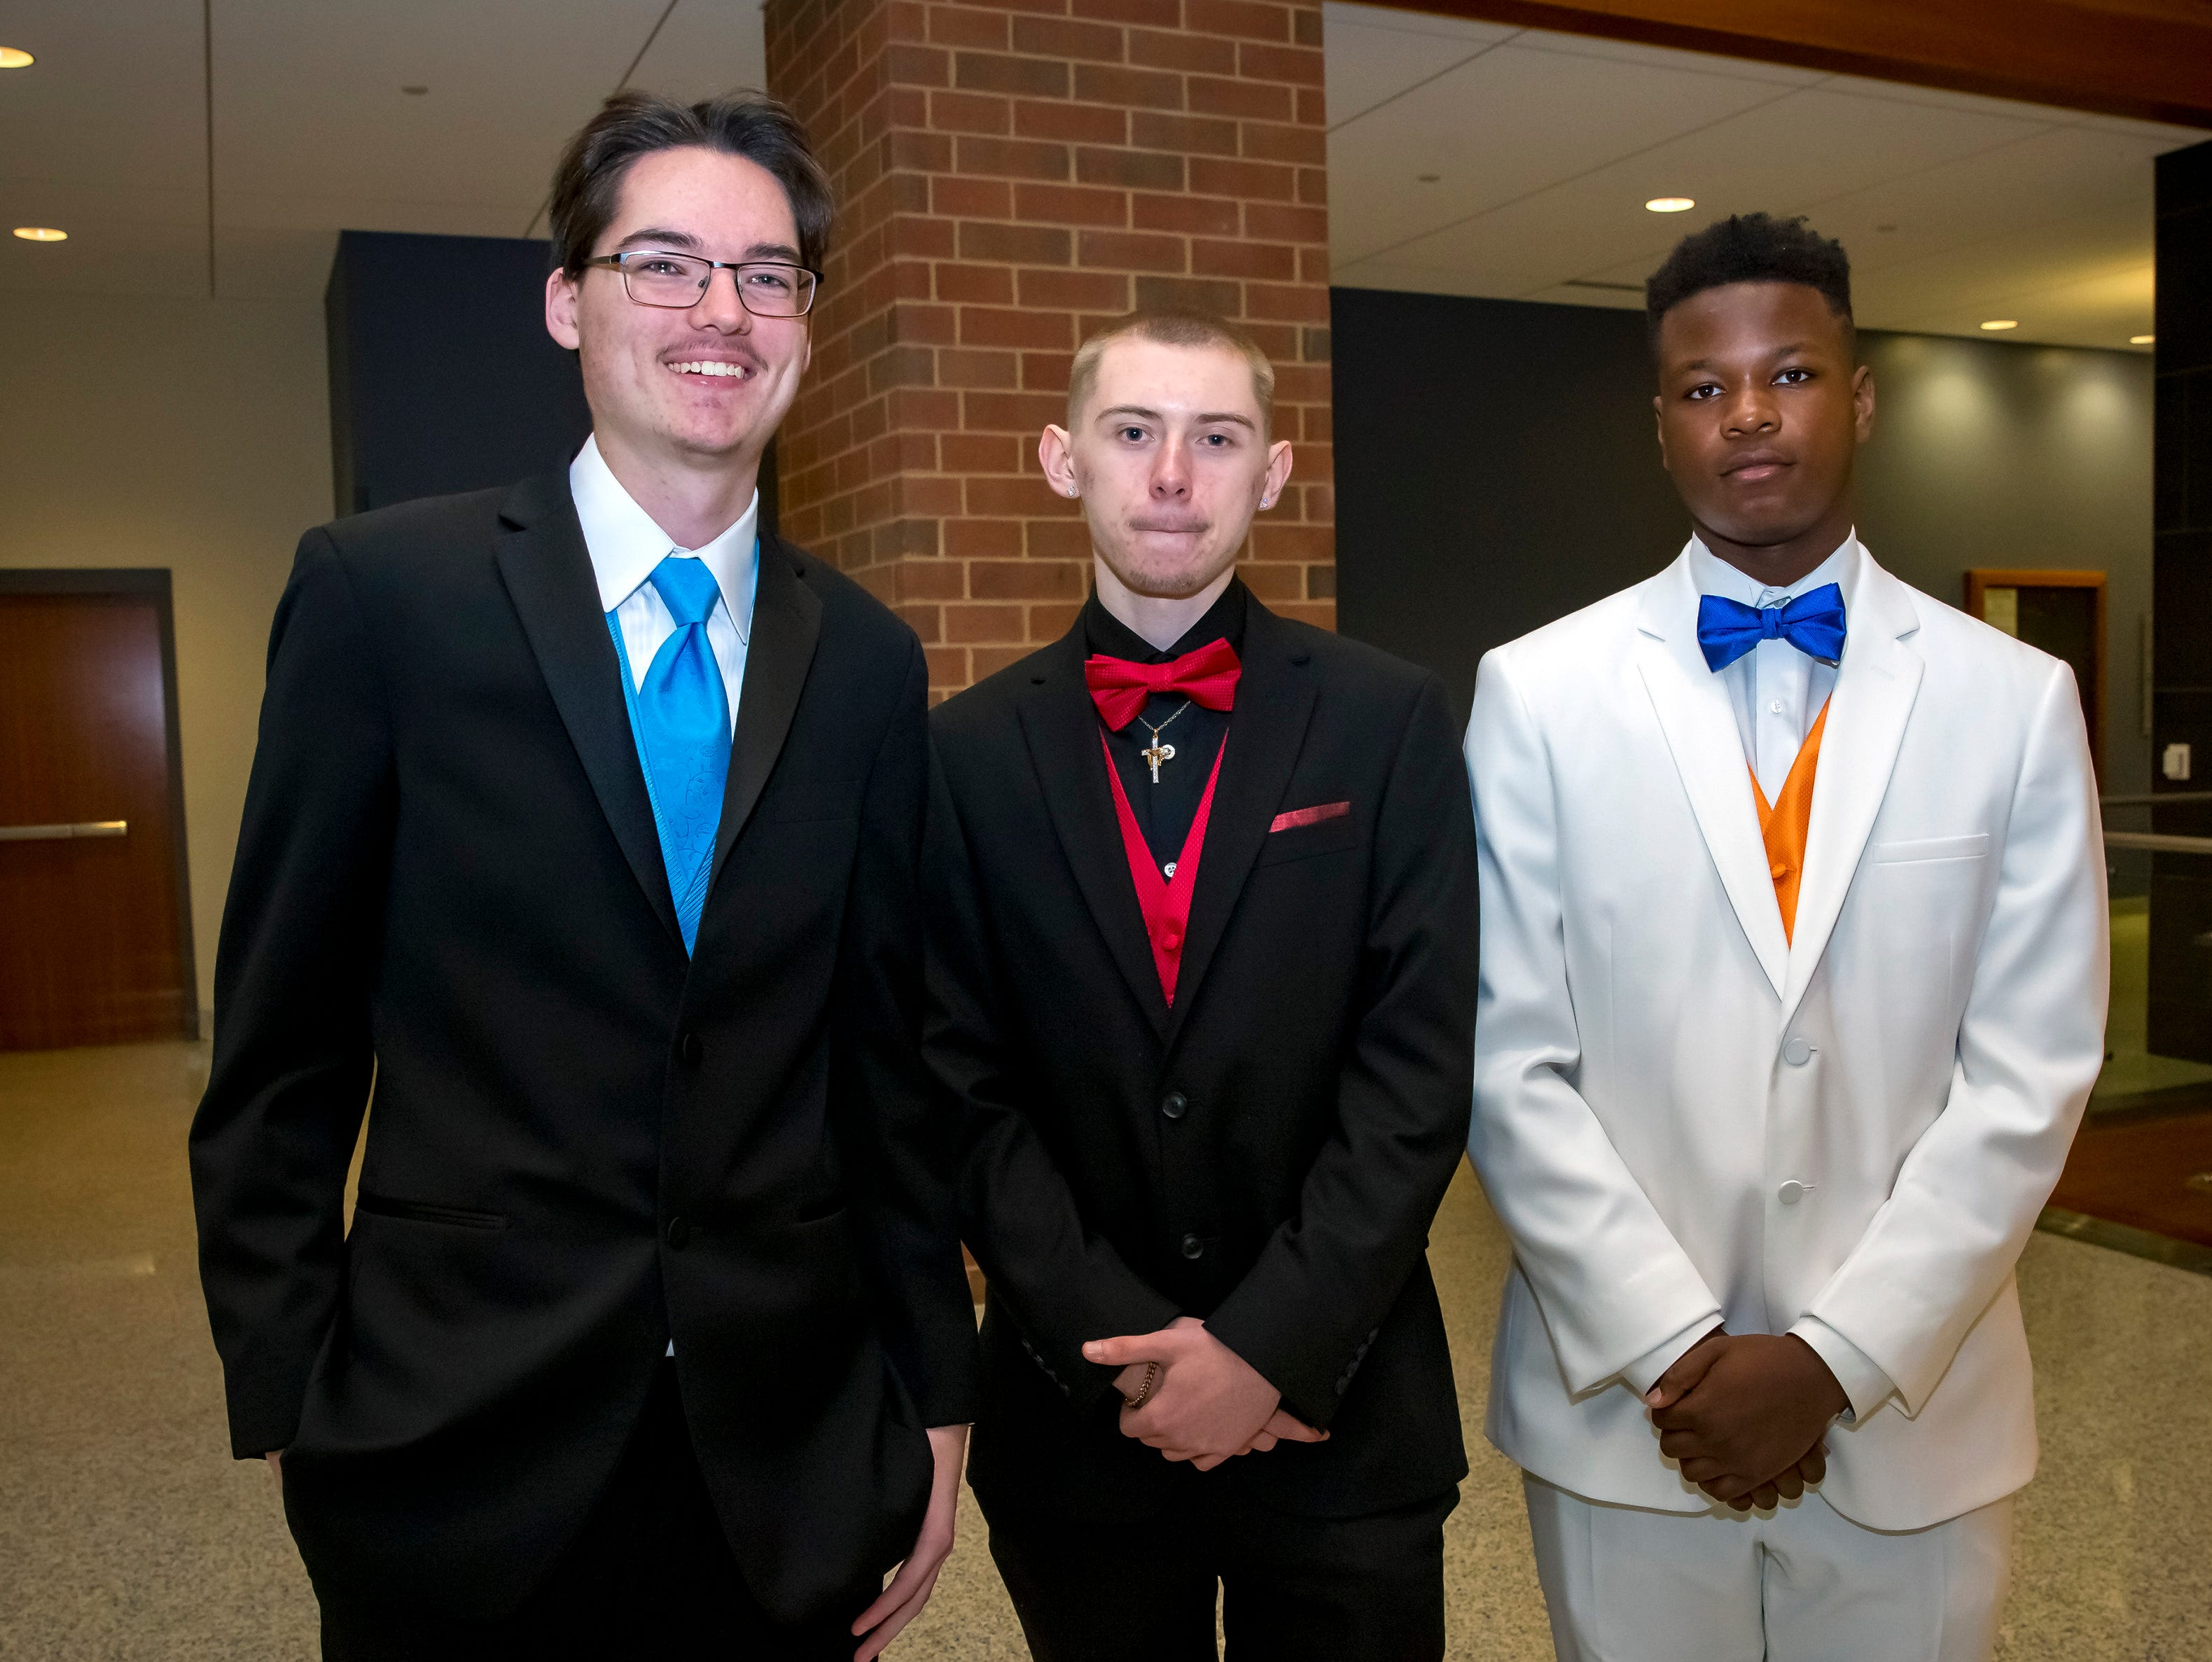 Colby Lemay, Skylar Garriott and Victor Fitzgerald arrive at the Stewarts Creek High School prom held at MTSU, Friday, April 5, 2019.